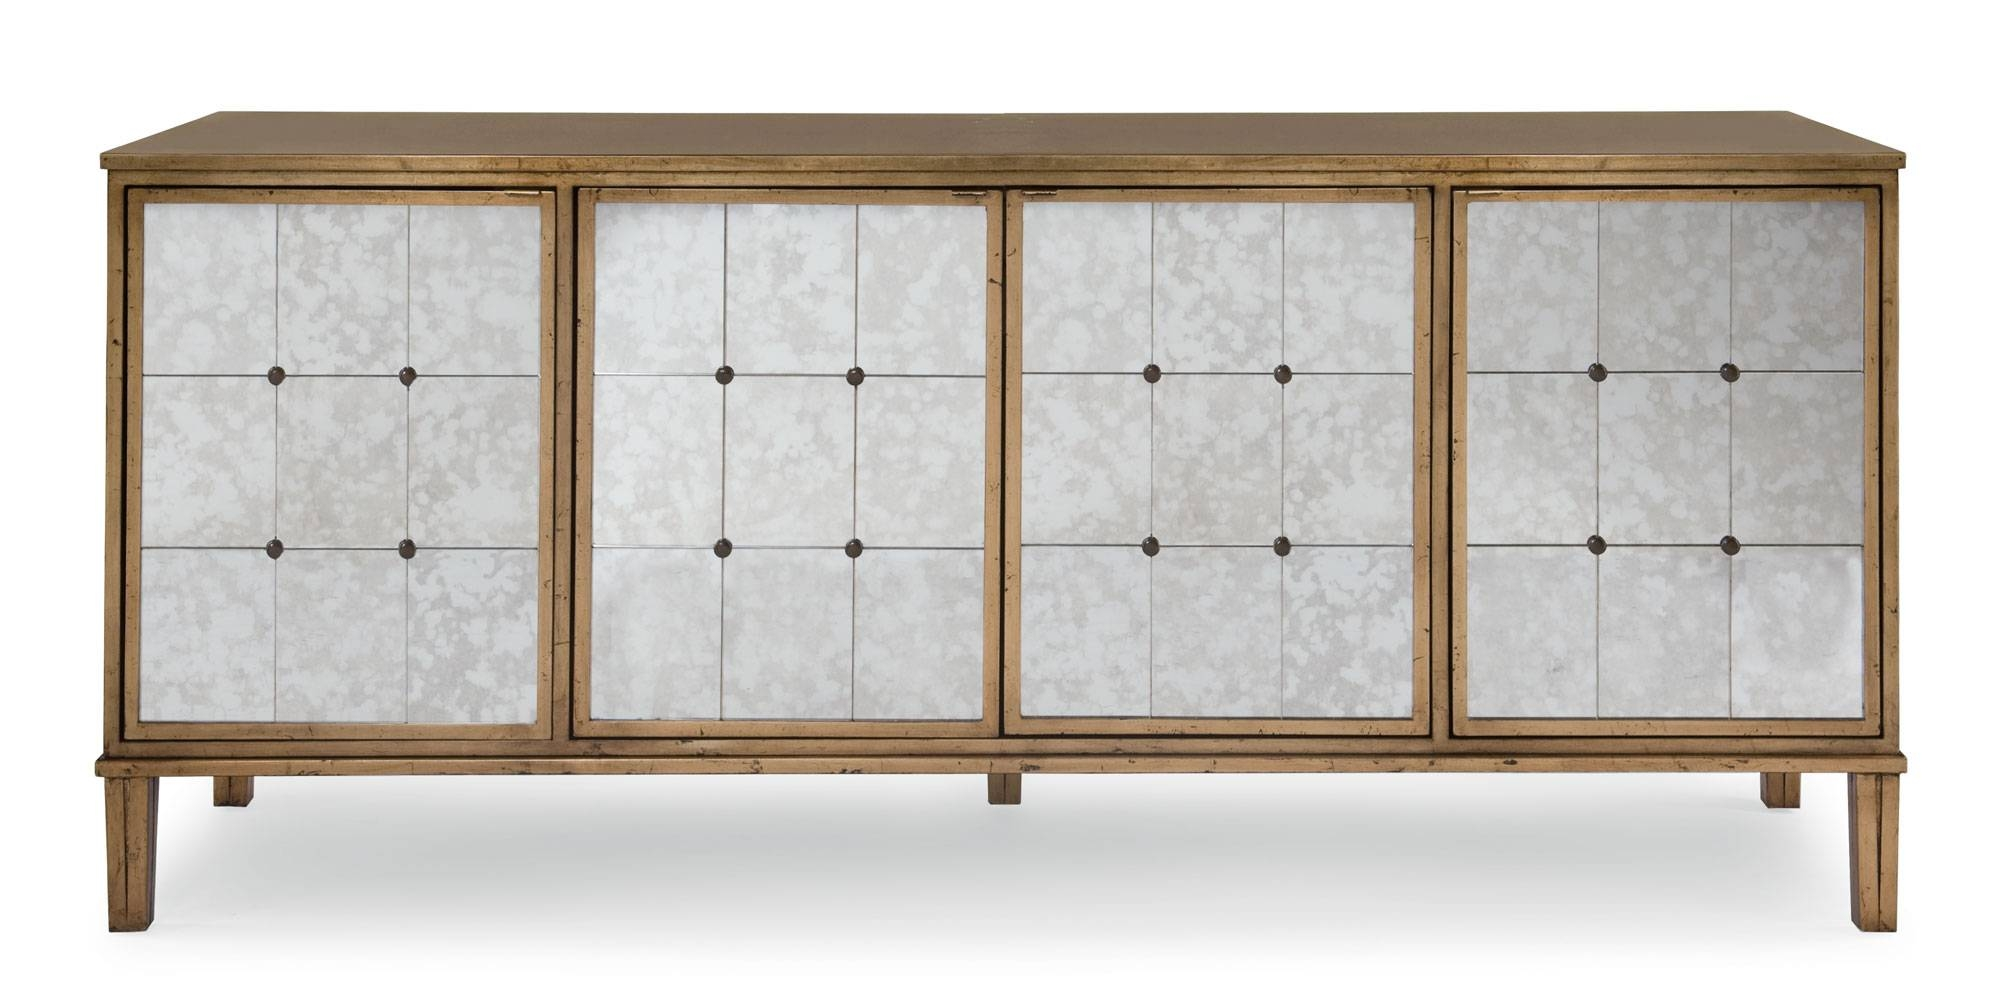 Captivating Dining Room Buffets Sideboards With Beige Accents Throughout Slim Sideboards (#8 of 20)